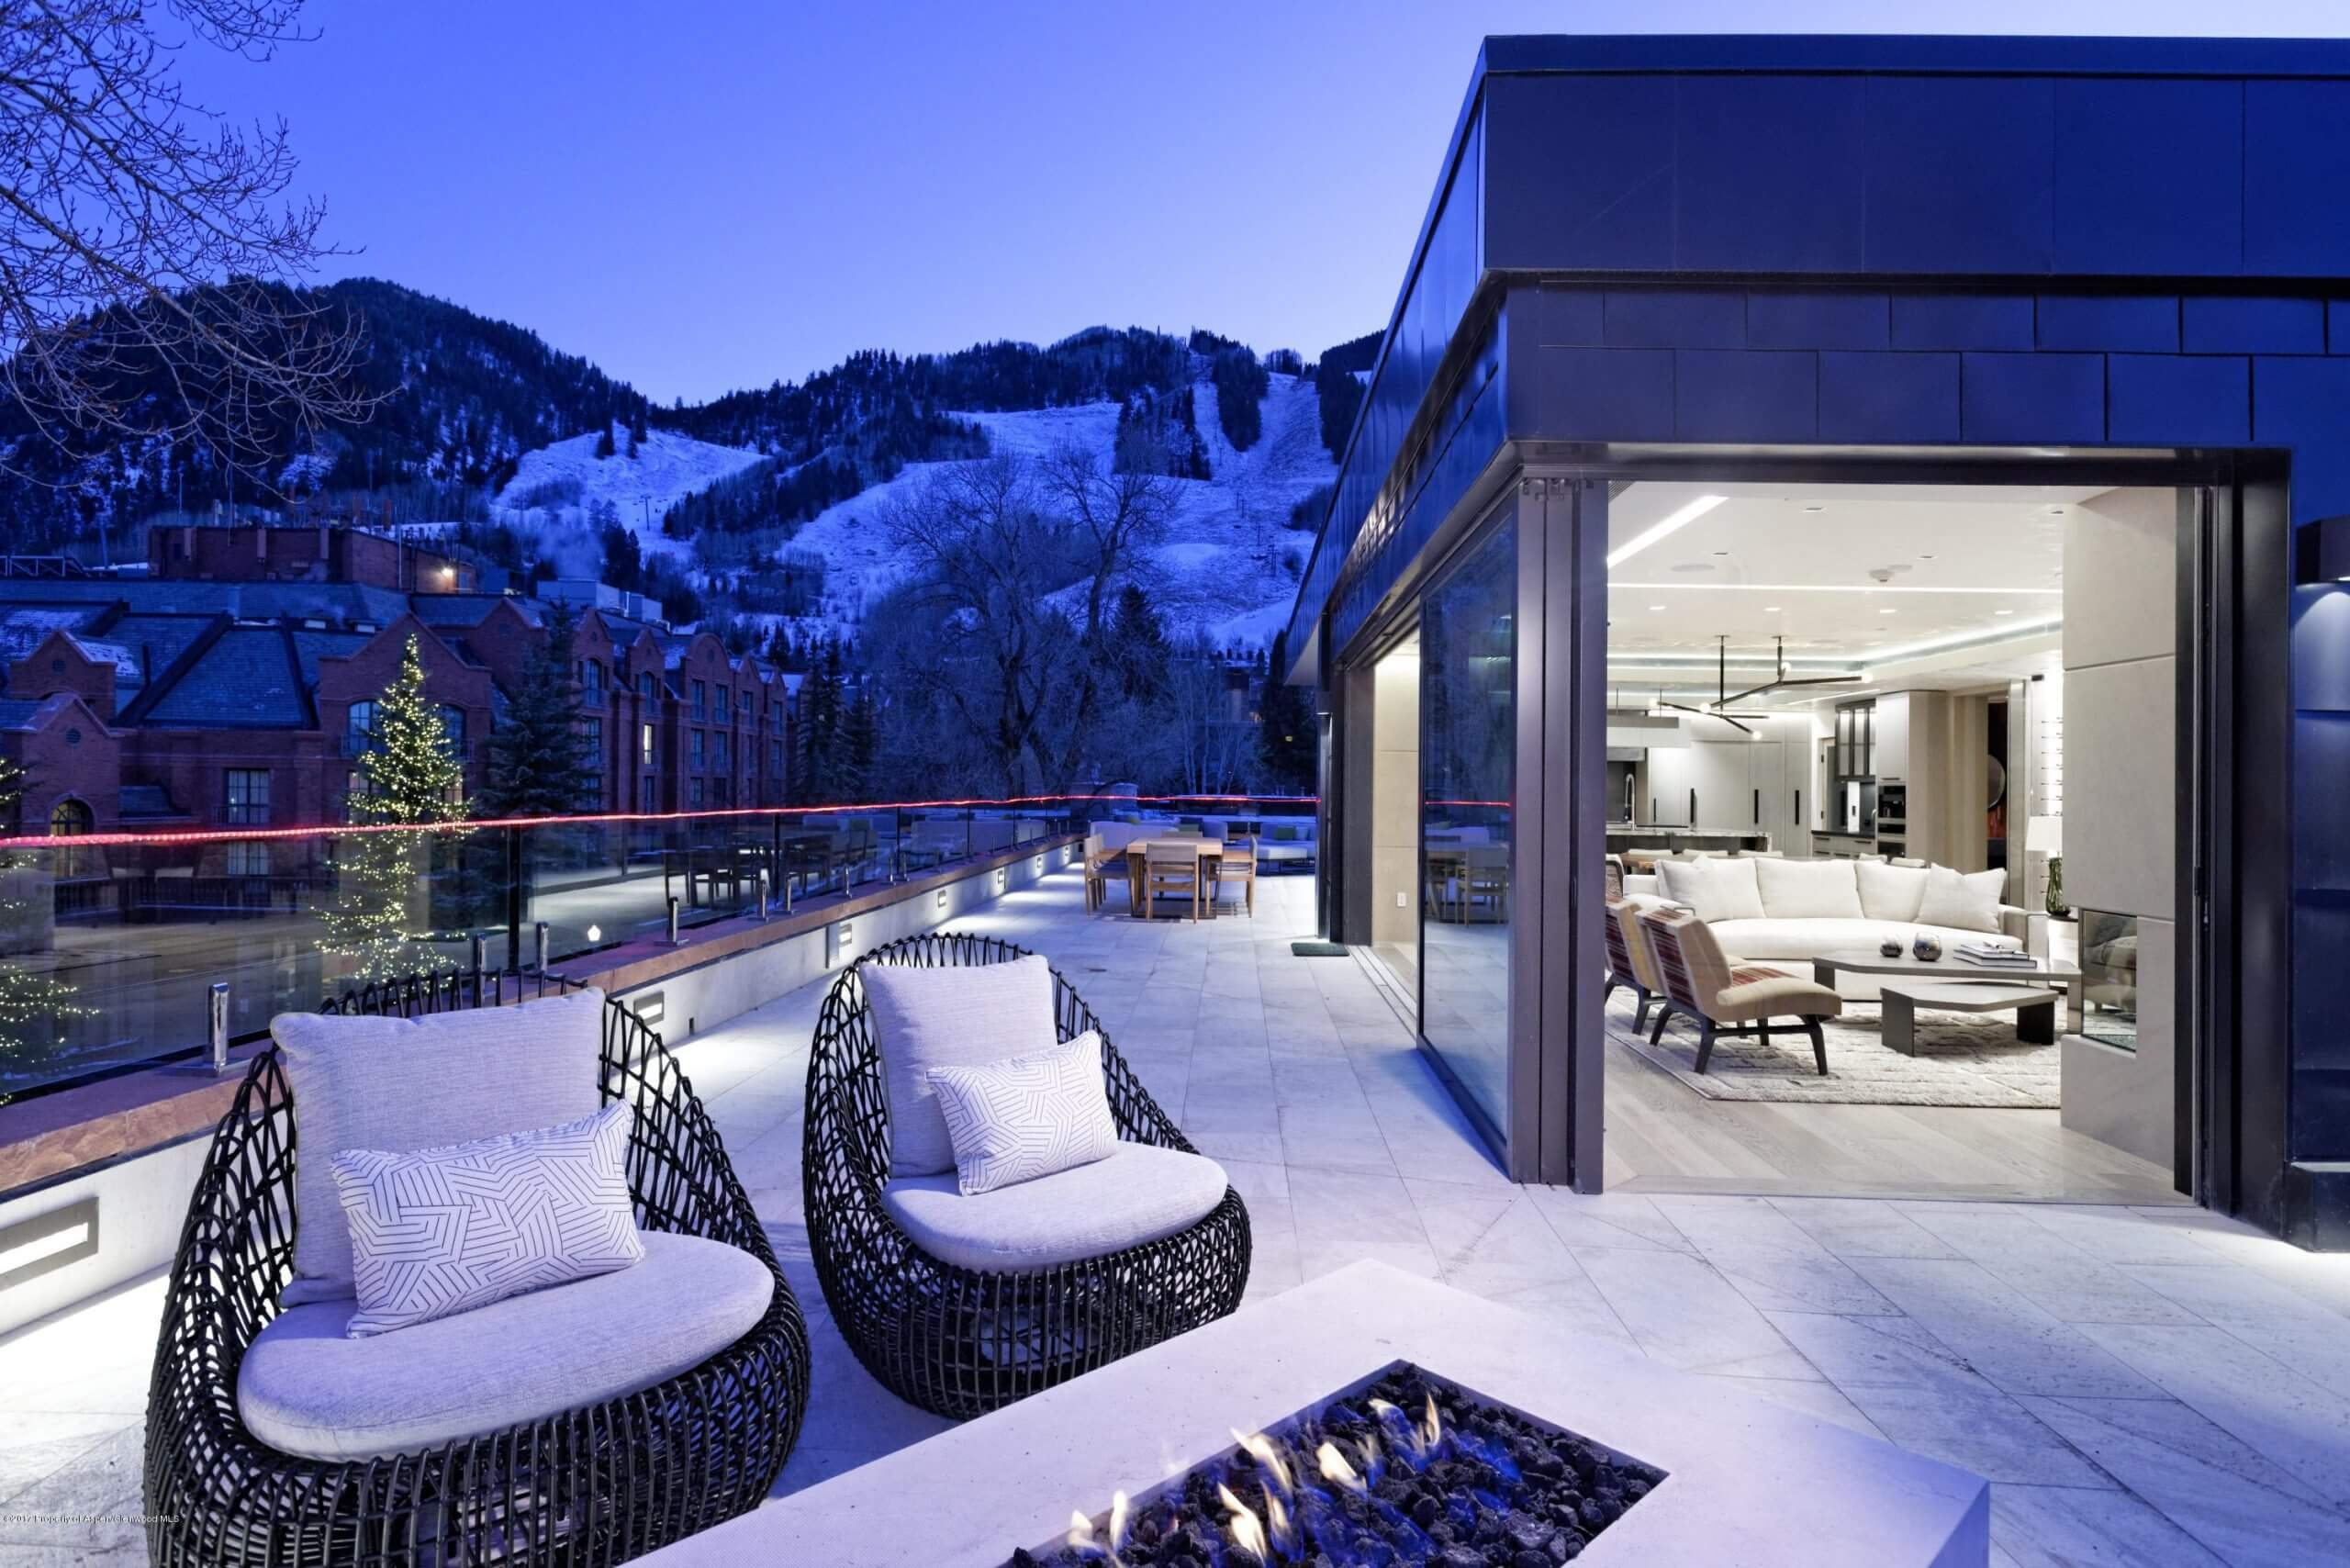 Dancing Bear Penthouse – Once Priced at $30M/$10,000 Sq Ft – Sells for $18.3M/$6,008 Sq Ft Furn Image